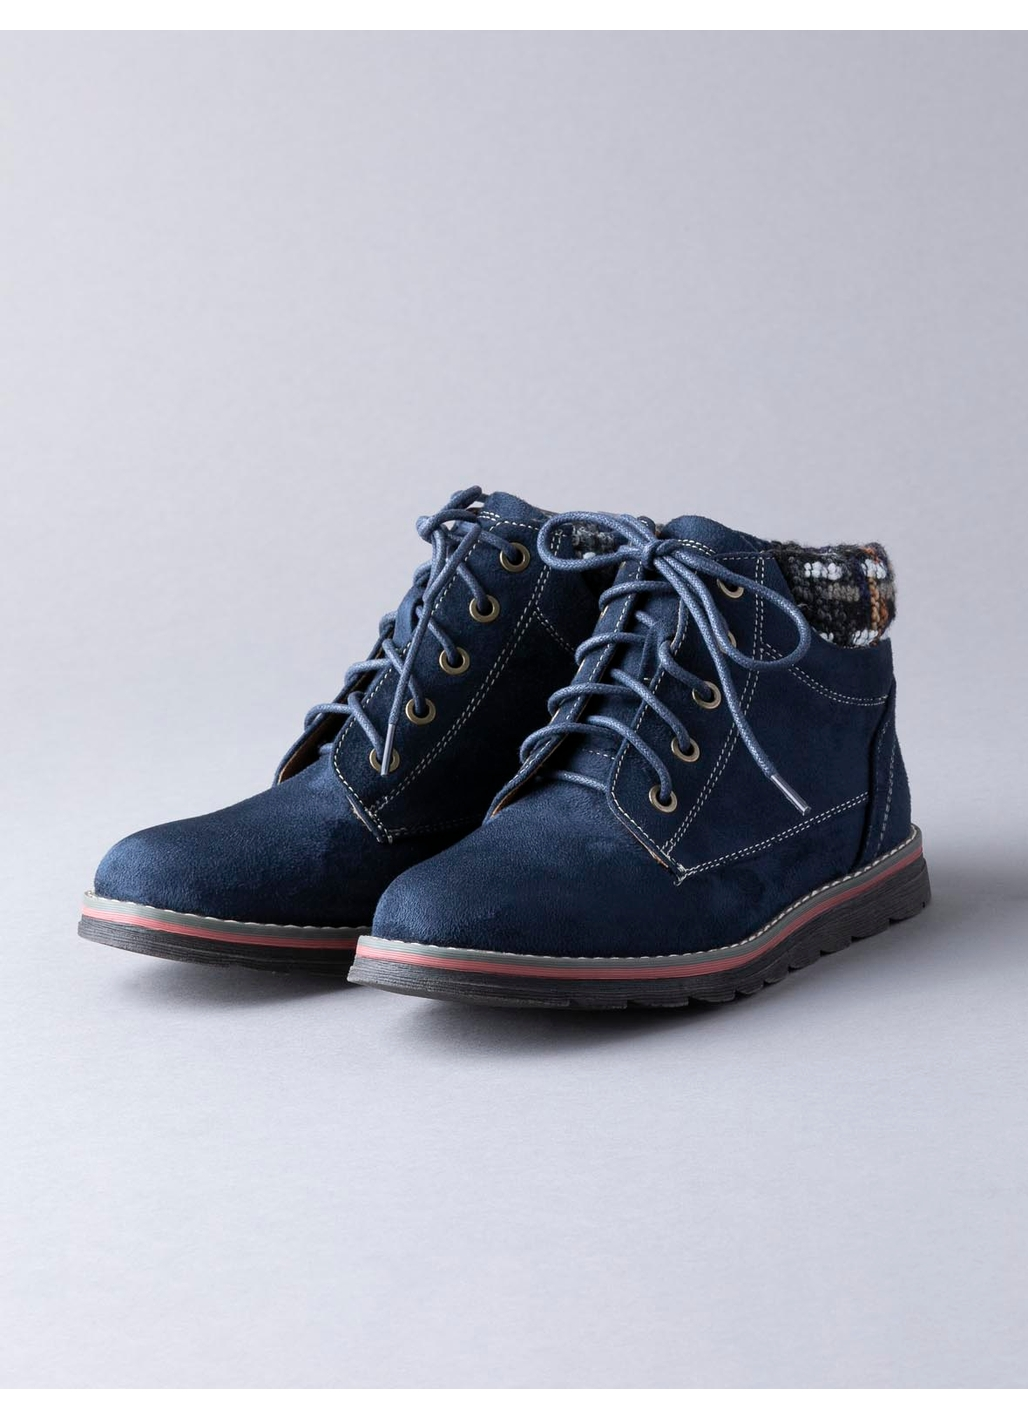 Lotus Sycamore Ankle Boots in Navy